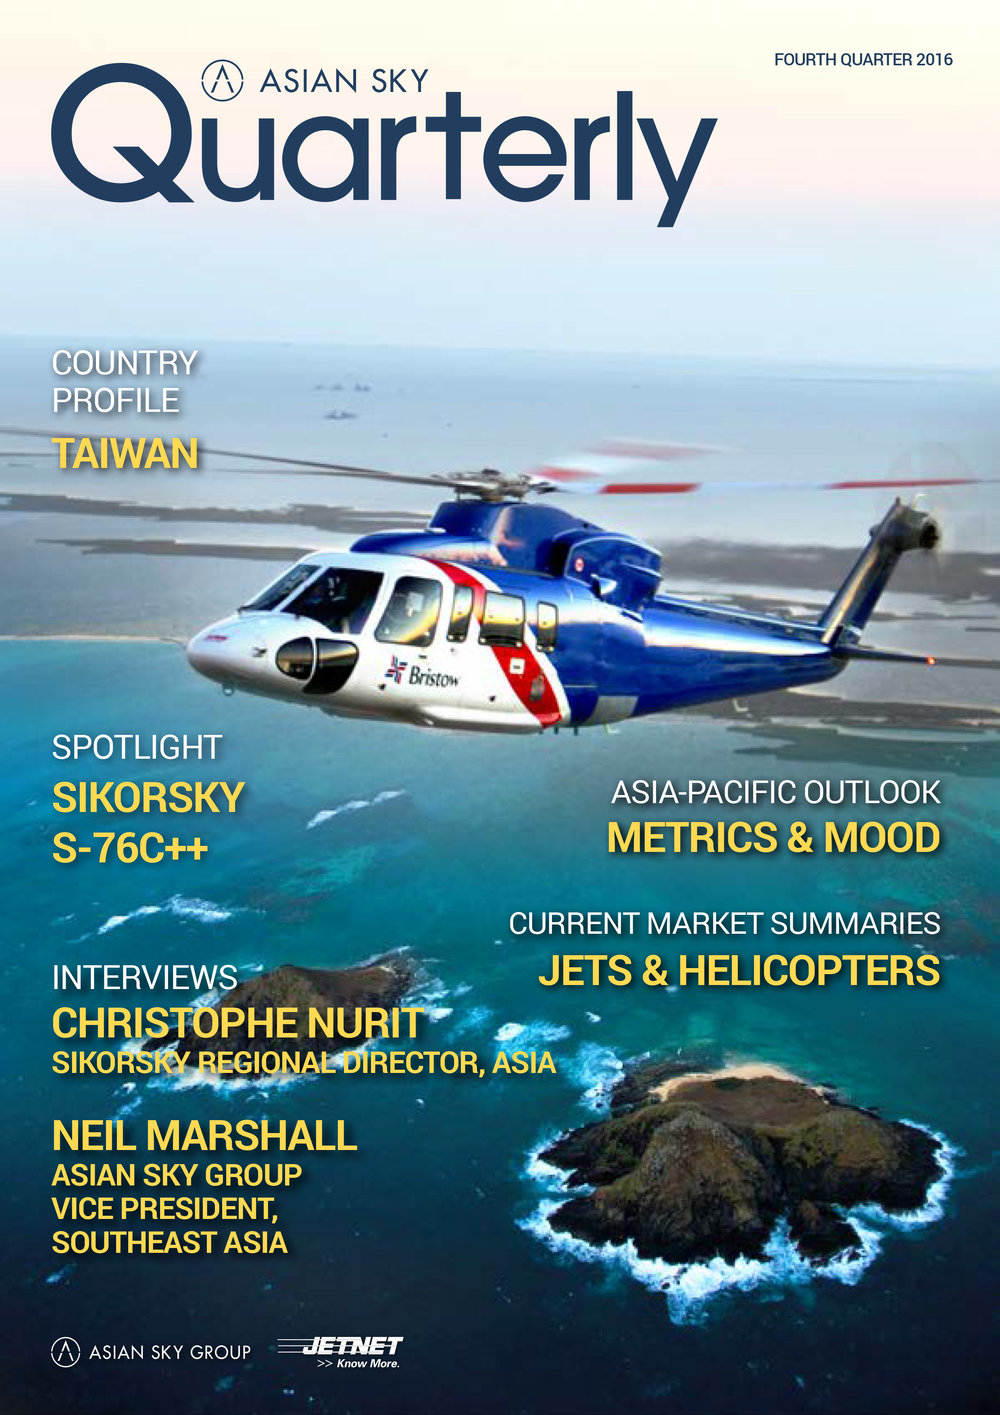 Asian Sky Quarterly - Q4 2016